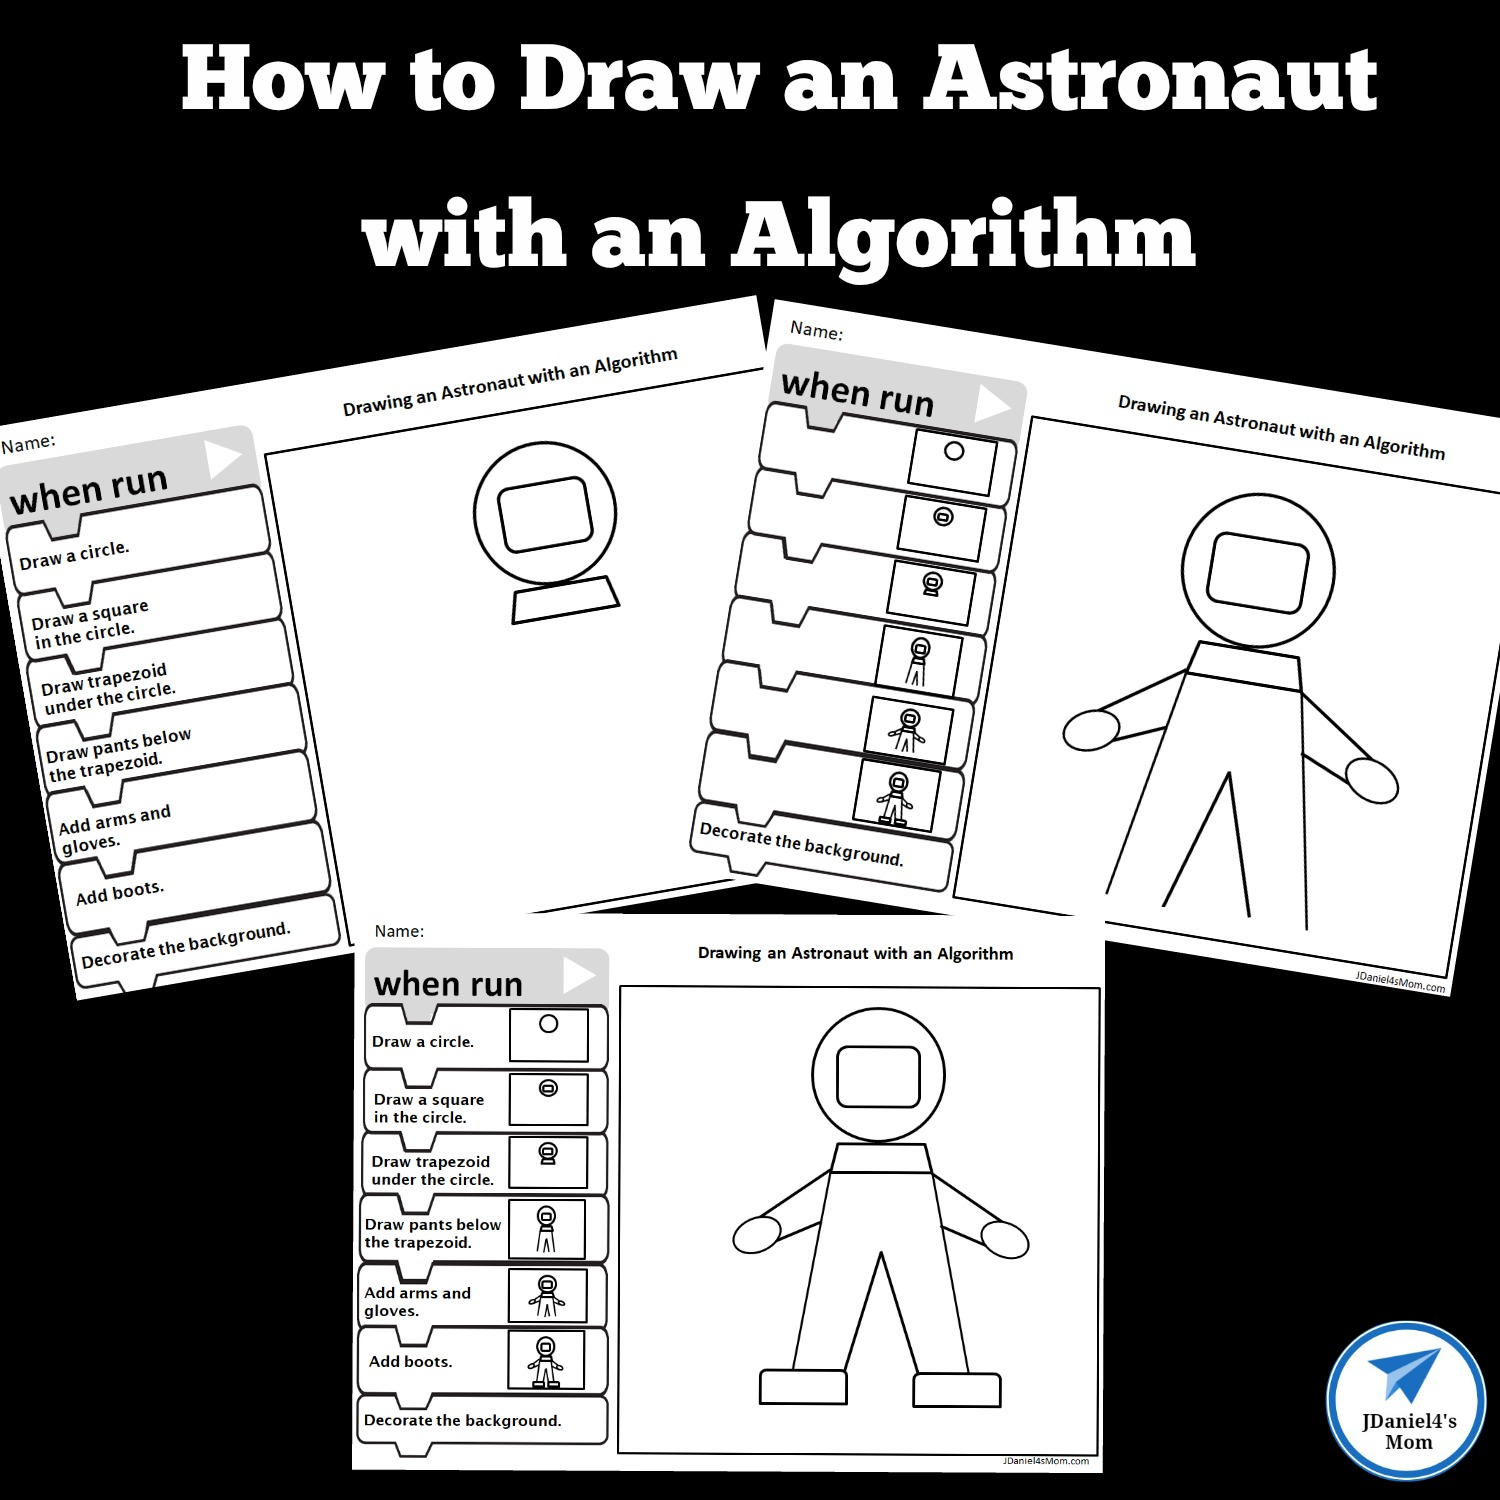 hight resolution of How to Draw an Astronaut with an Algorithm - JDaniel4s Mom